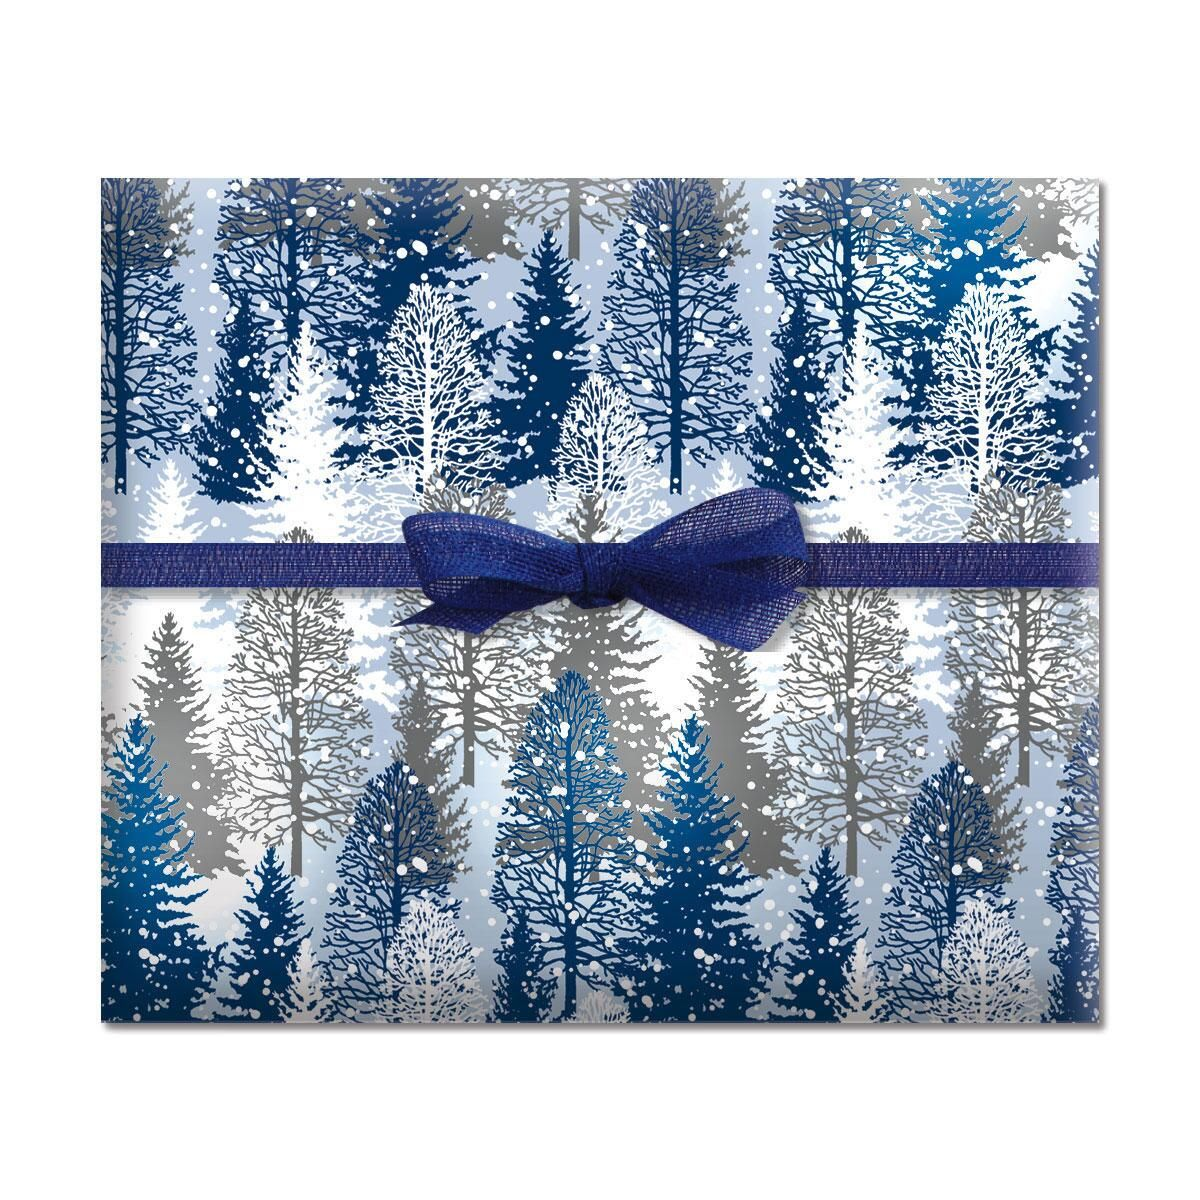 Snowy Trees Jumbo Rolled Gift Wrap